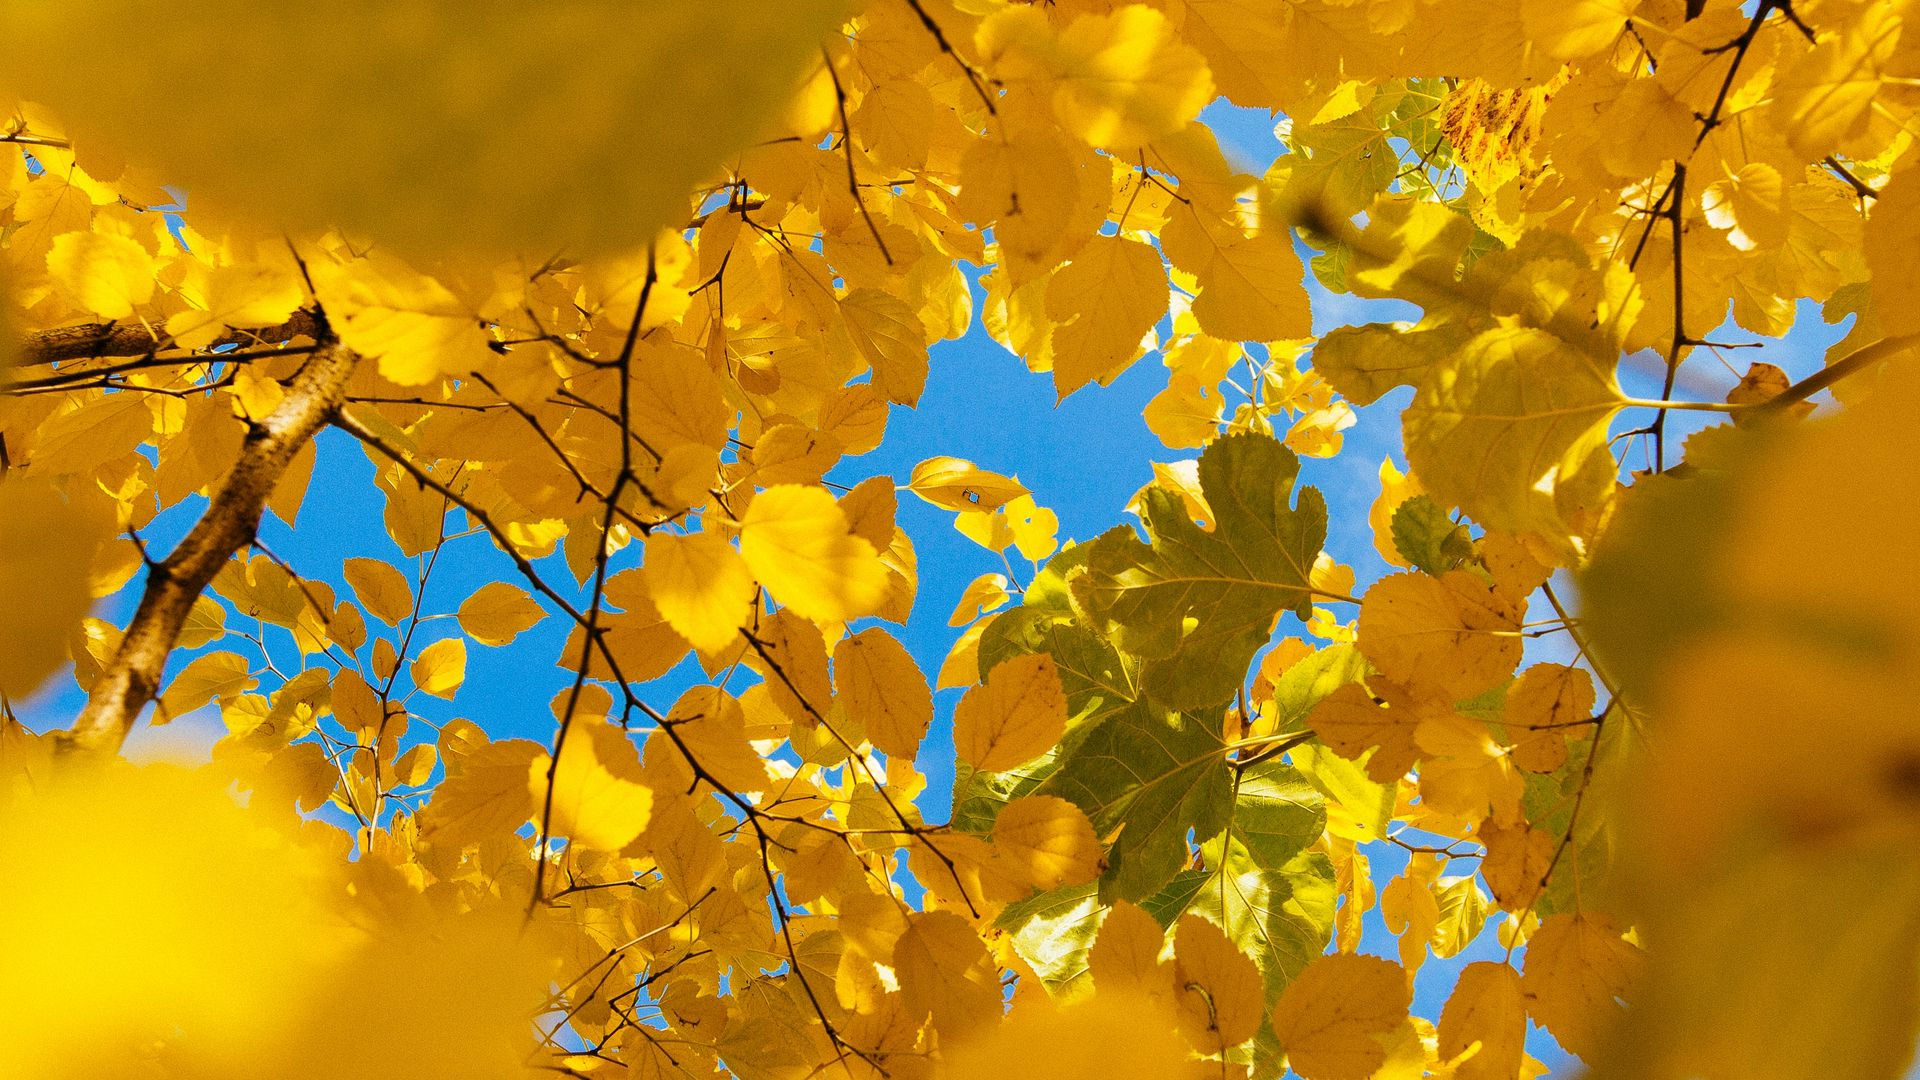 1920x1080 Wallpaper leaves, yellow, branches, autumn